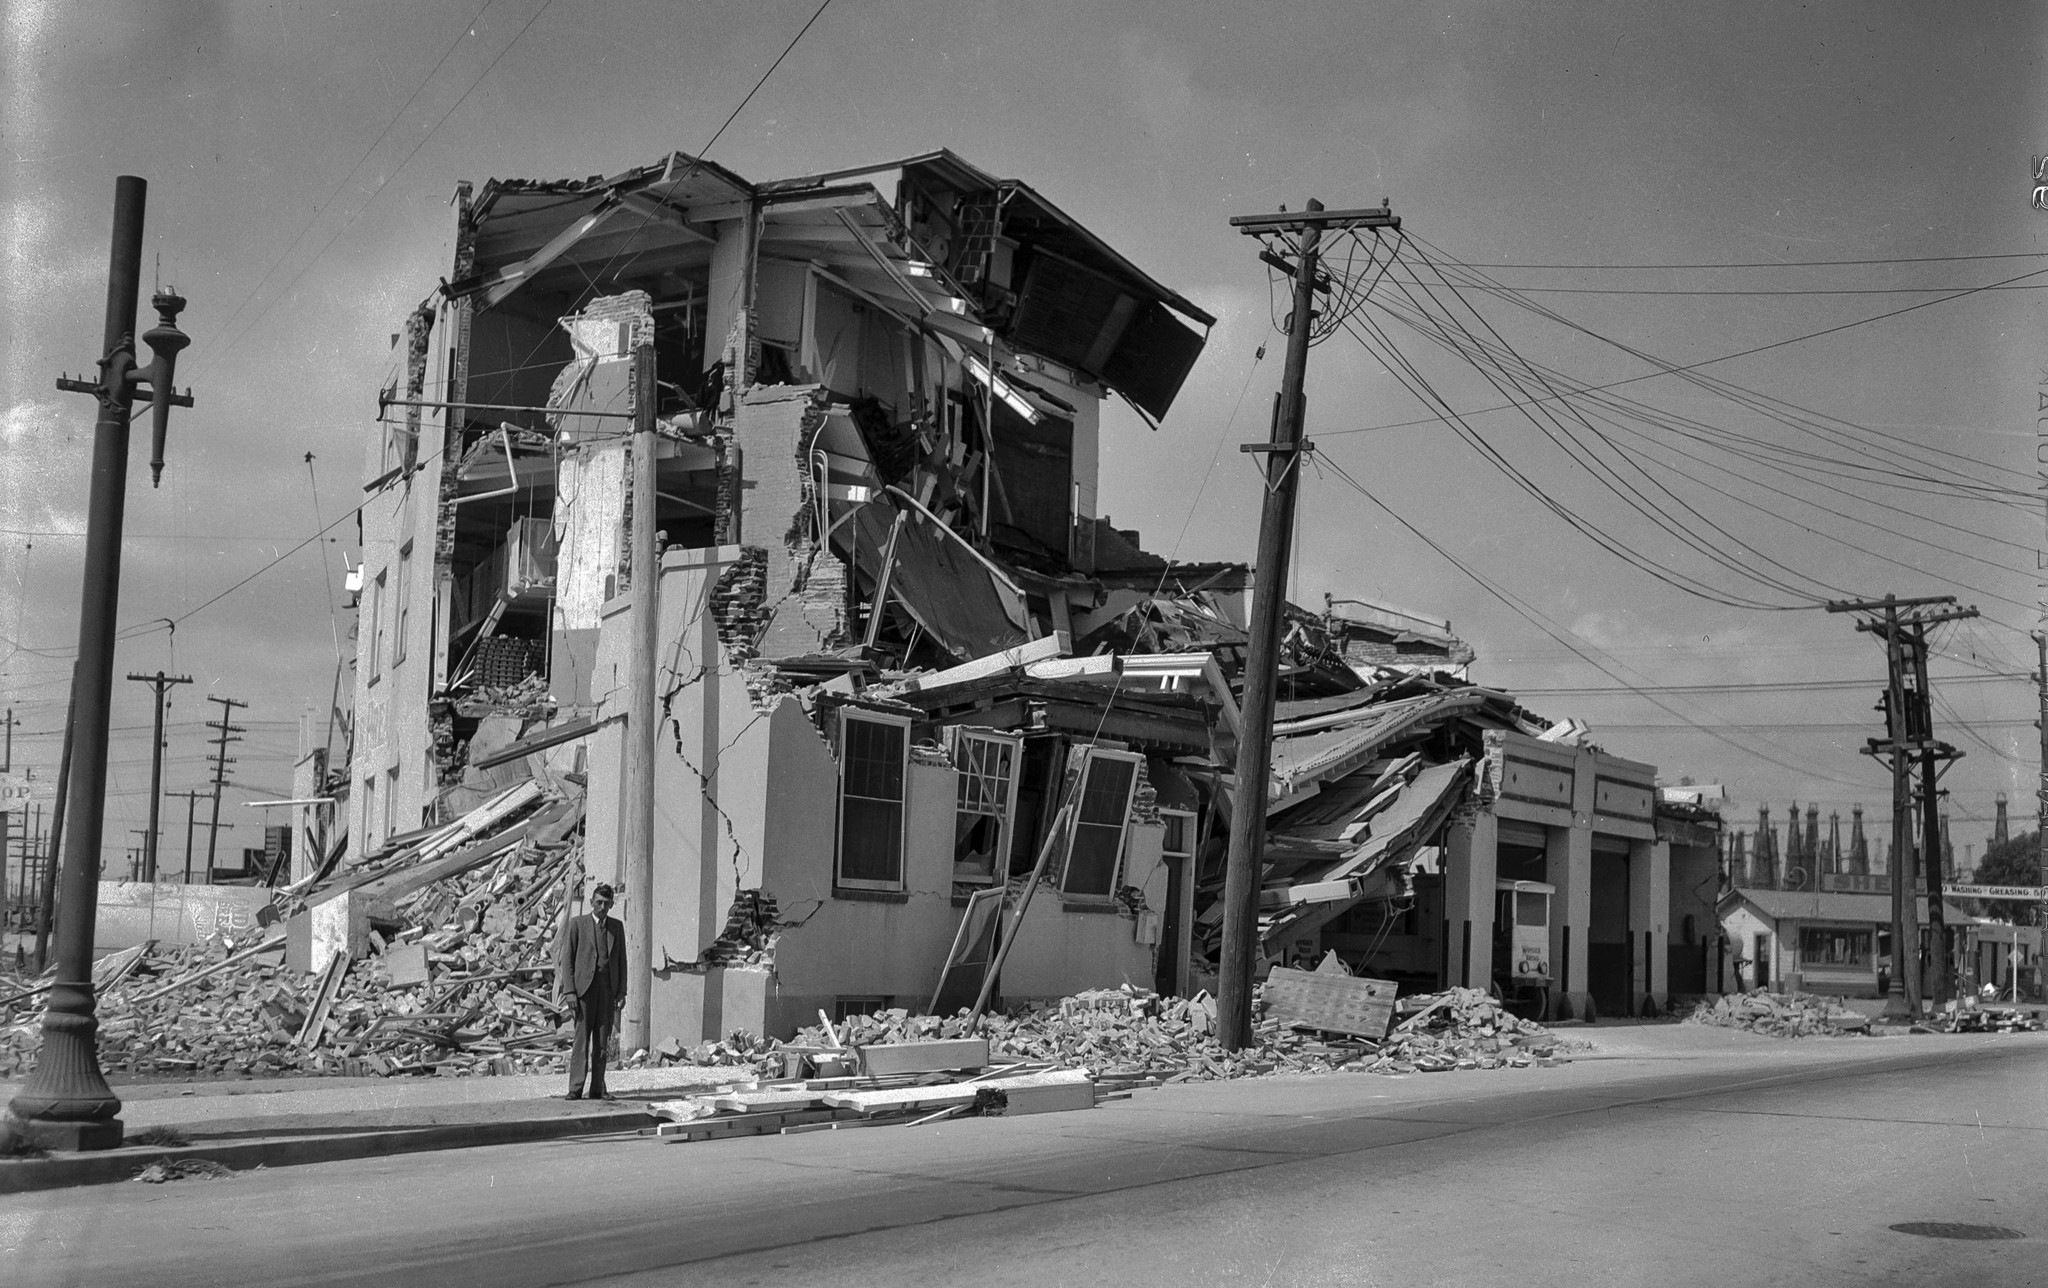 Building destroyed by the March 10, 1933, Long Beach Earthquake. No other information currently avai